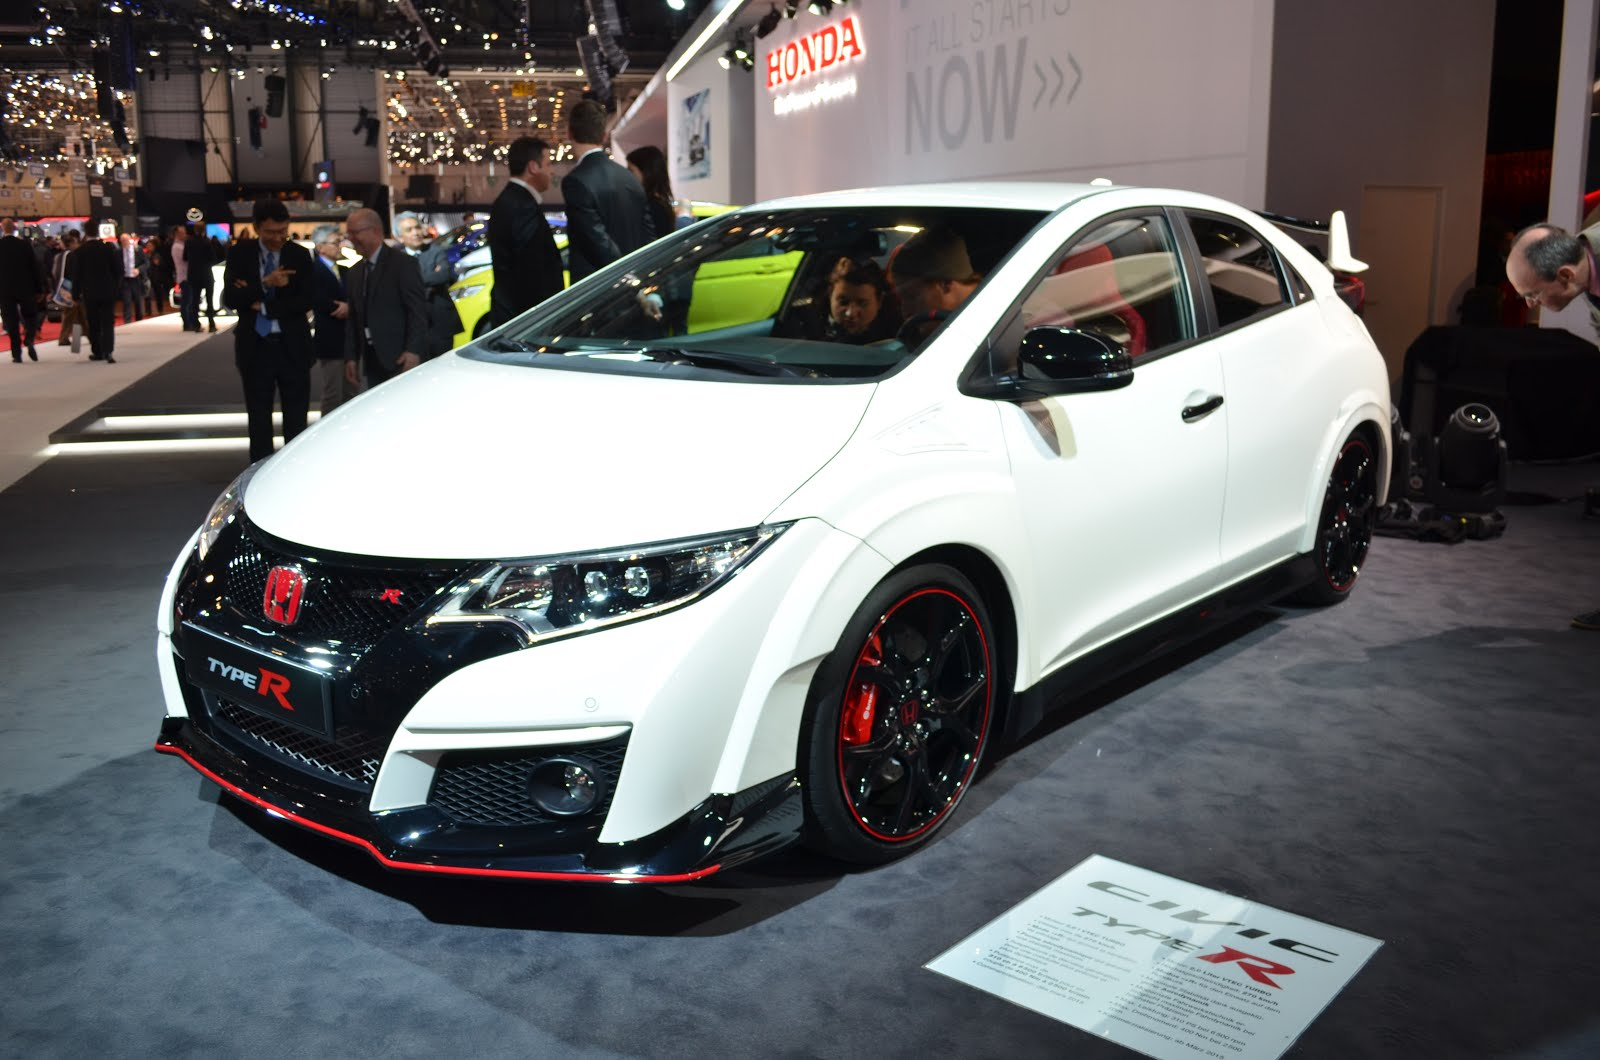 Honda Civic Type R Hd Wallpapers 7wallpapers Net